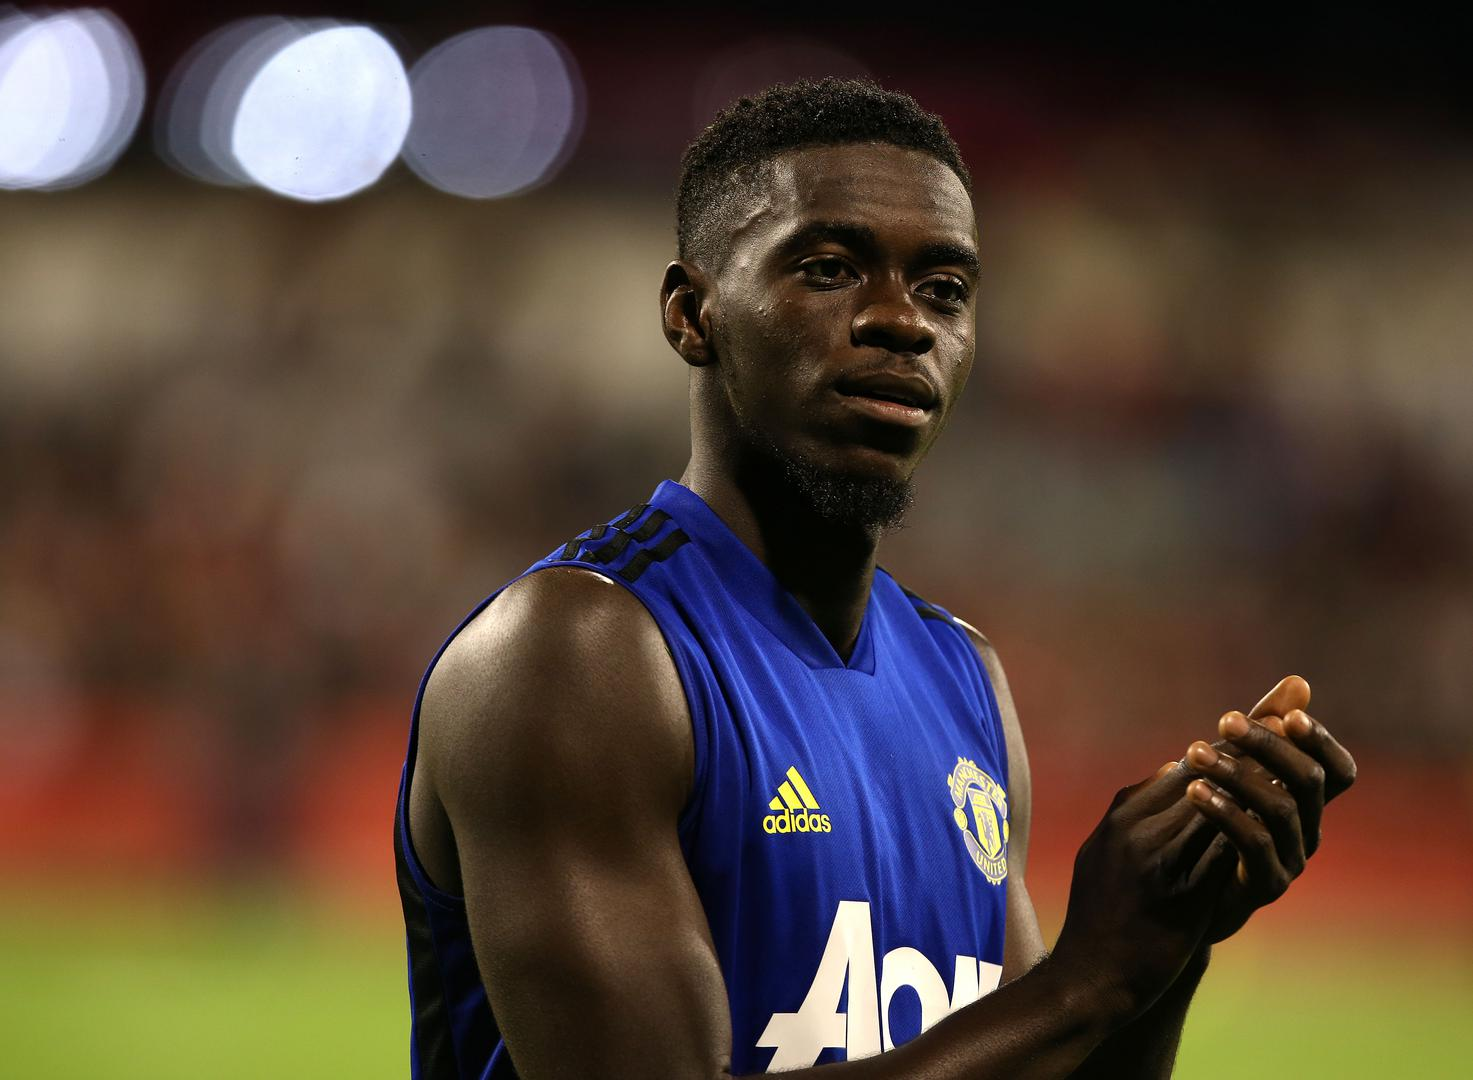 Axel Tuanzebe applauds the Manchester United fans who attended an open training session in Perth, Australia,